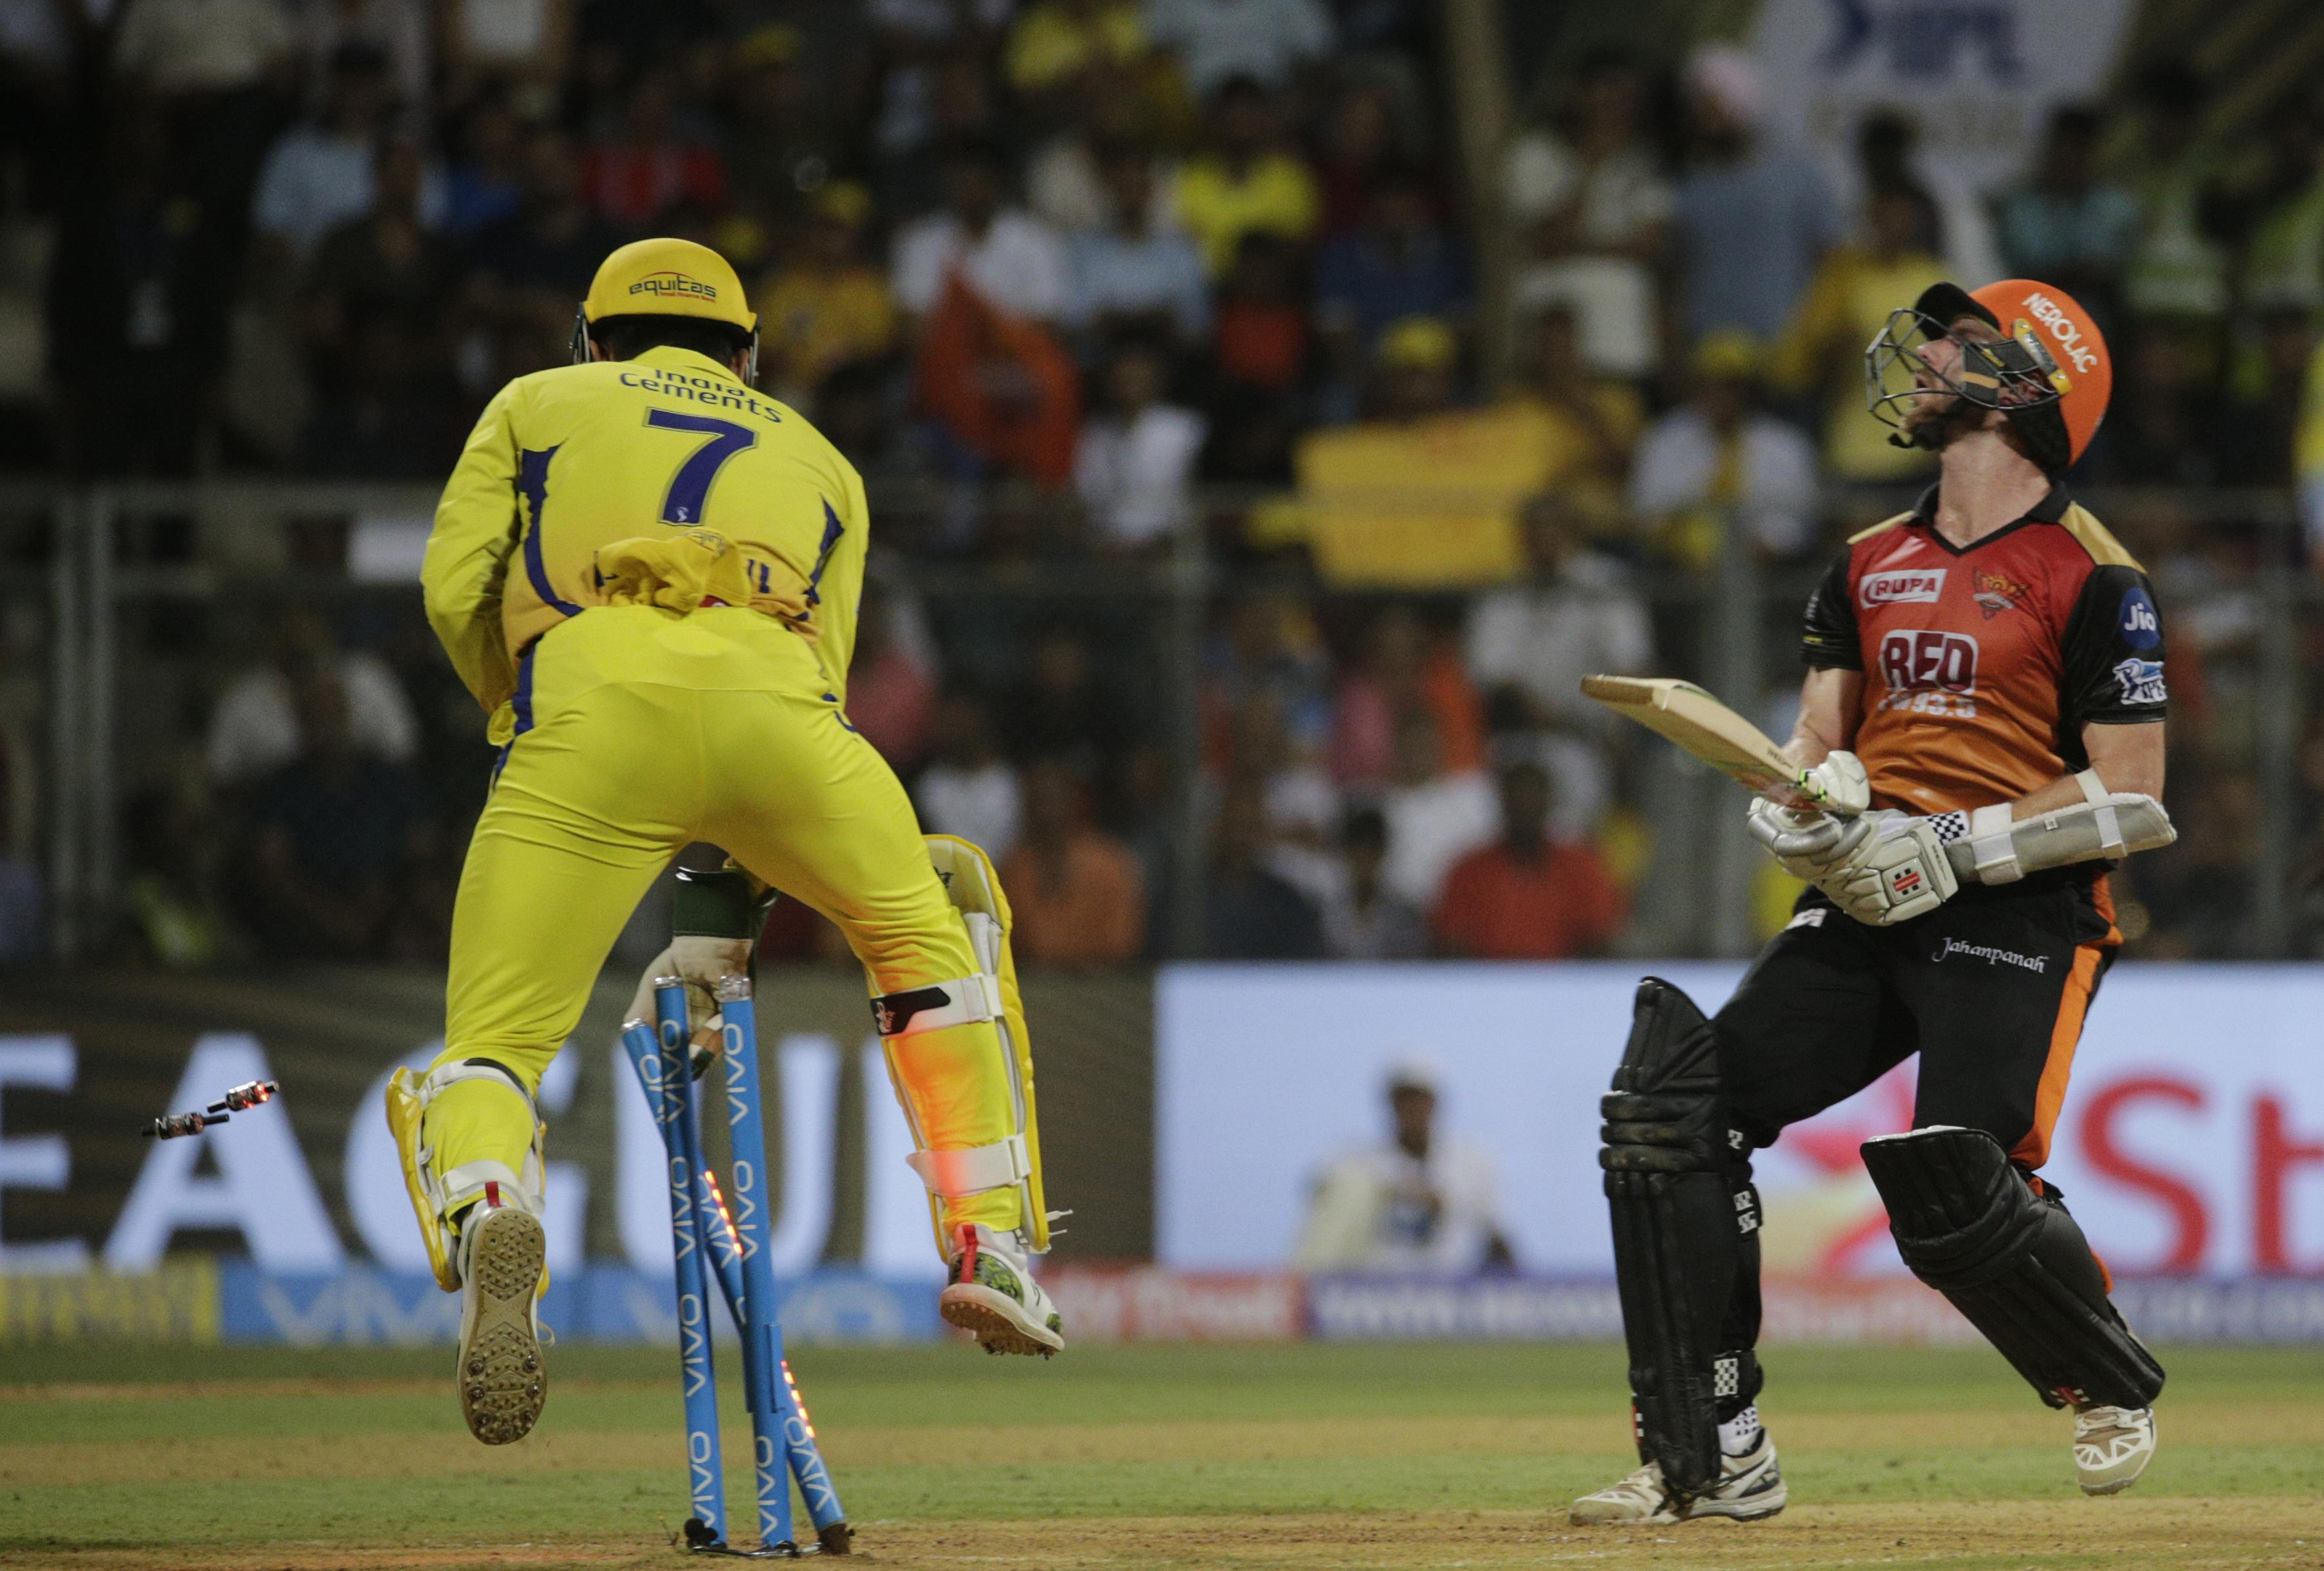 Sunrisers Hyperabad set CSK a target of 179 runs to win in the IPL final